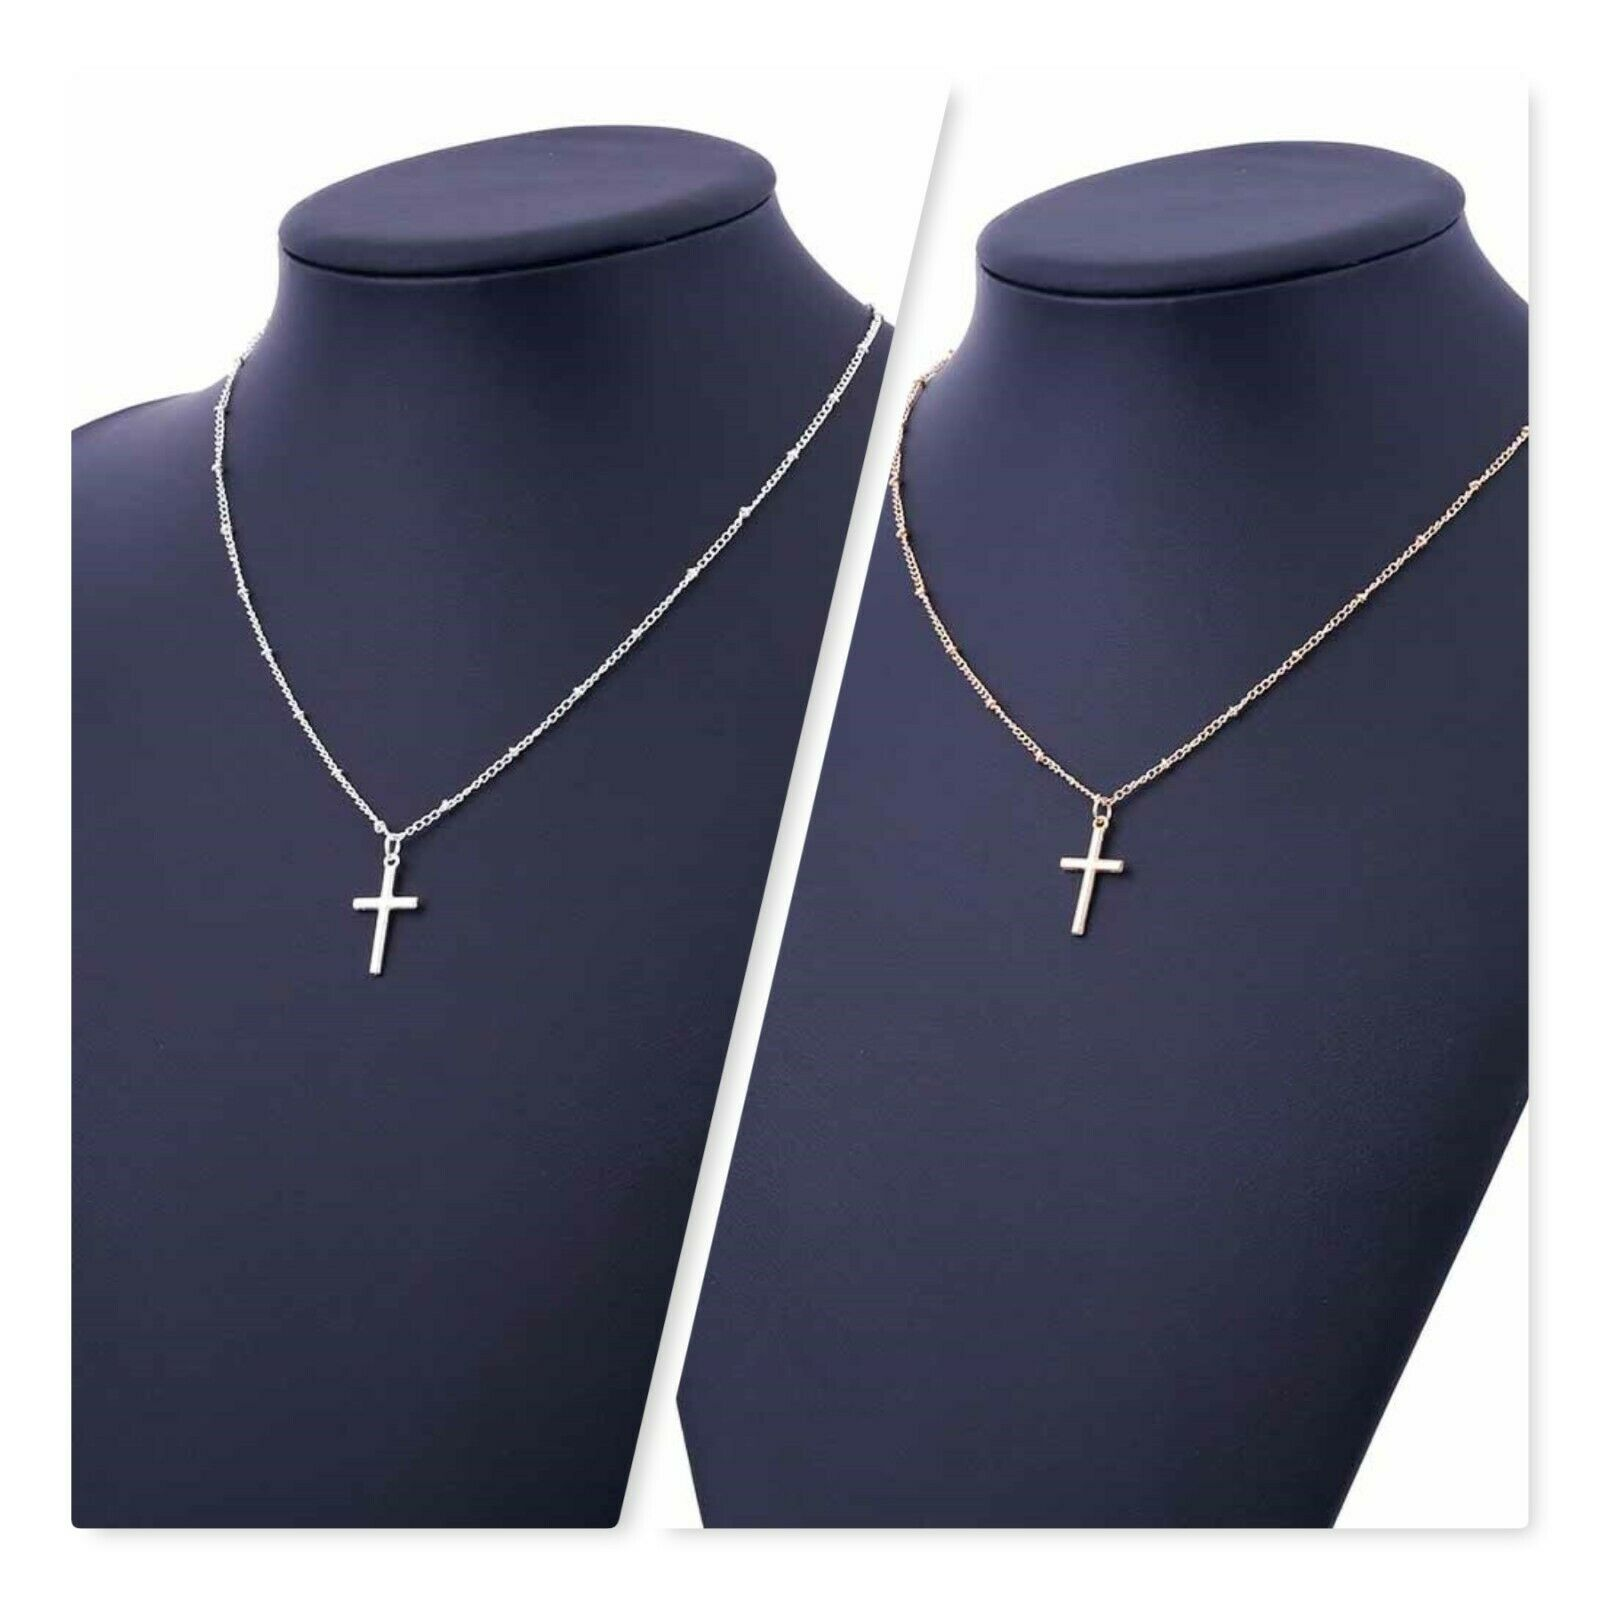 Jewellery - Gold-Silver Chain Cross Necklace Small Gold Cross Religious Jewelry